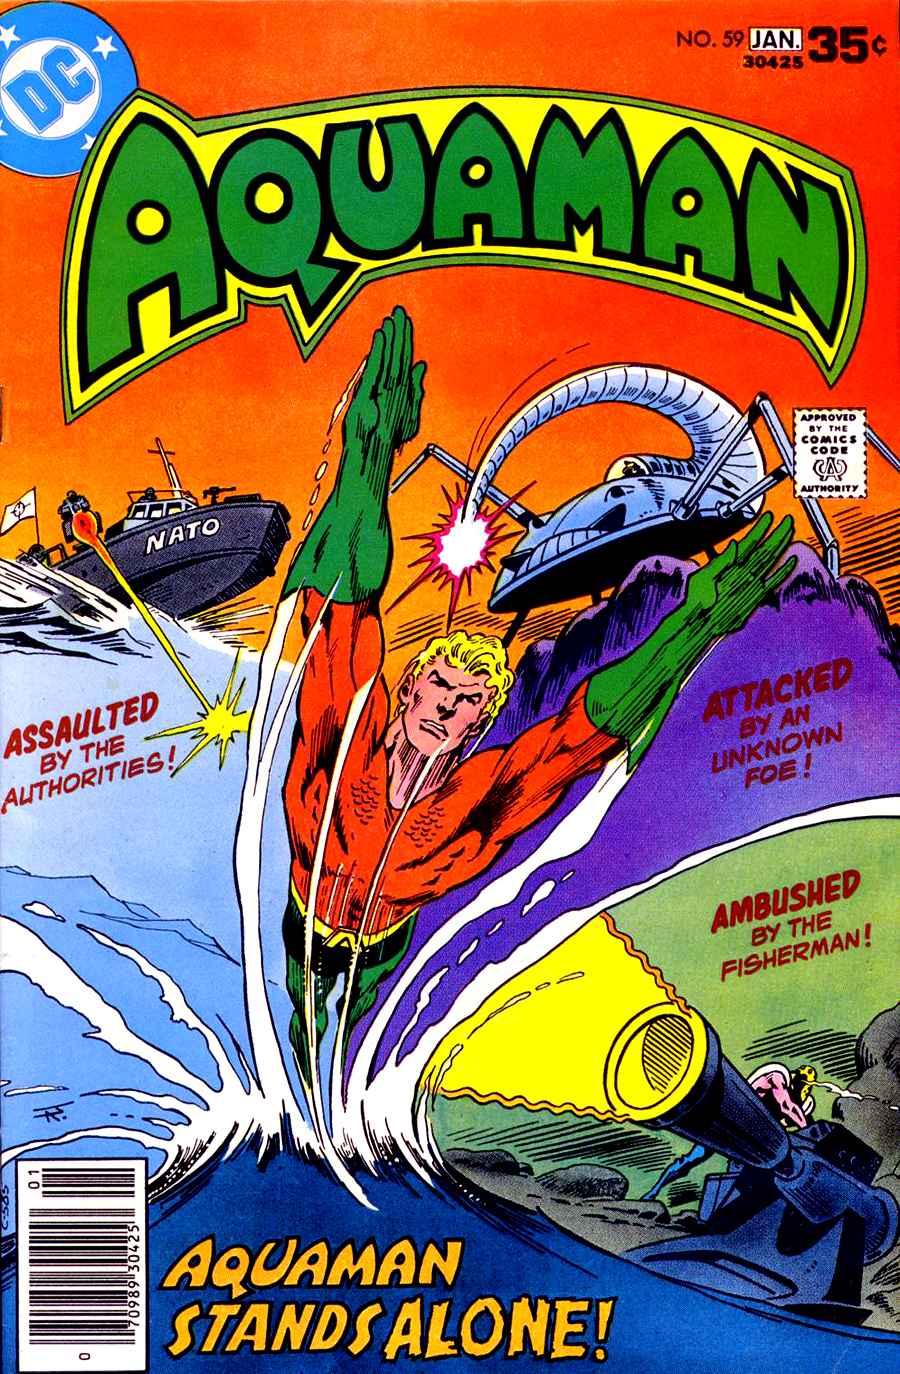 Aquaman #59 cover by Jim Aparo